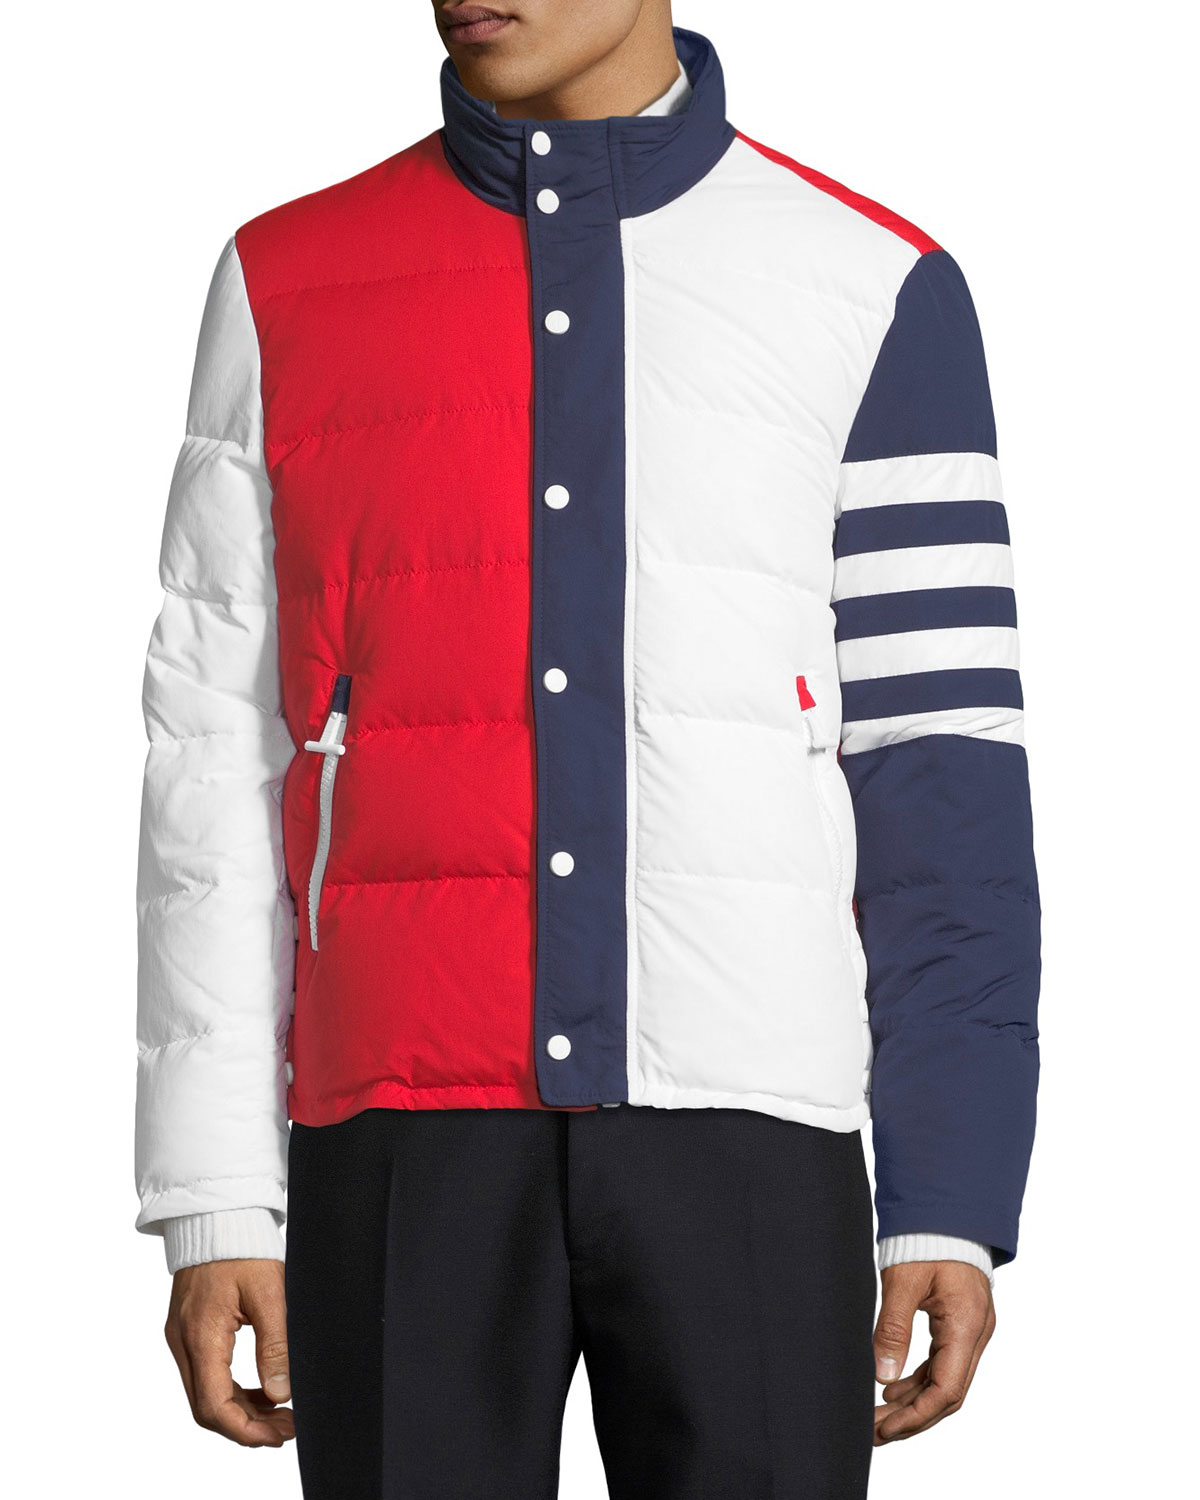 2f758b449 Tricolor Puffer Jacket with 4-Bar Stripes, Red/White/Blue